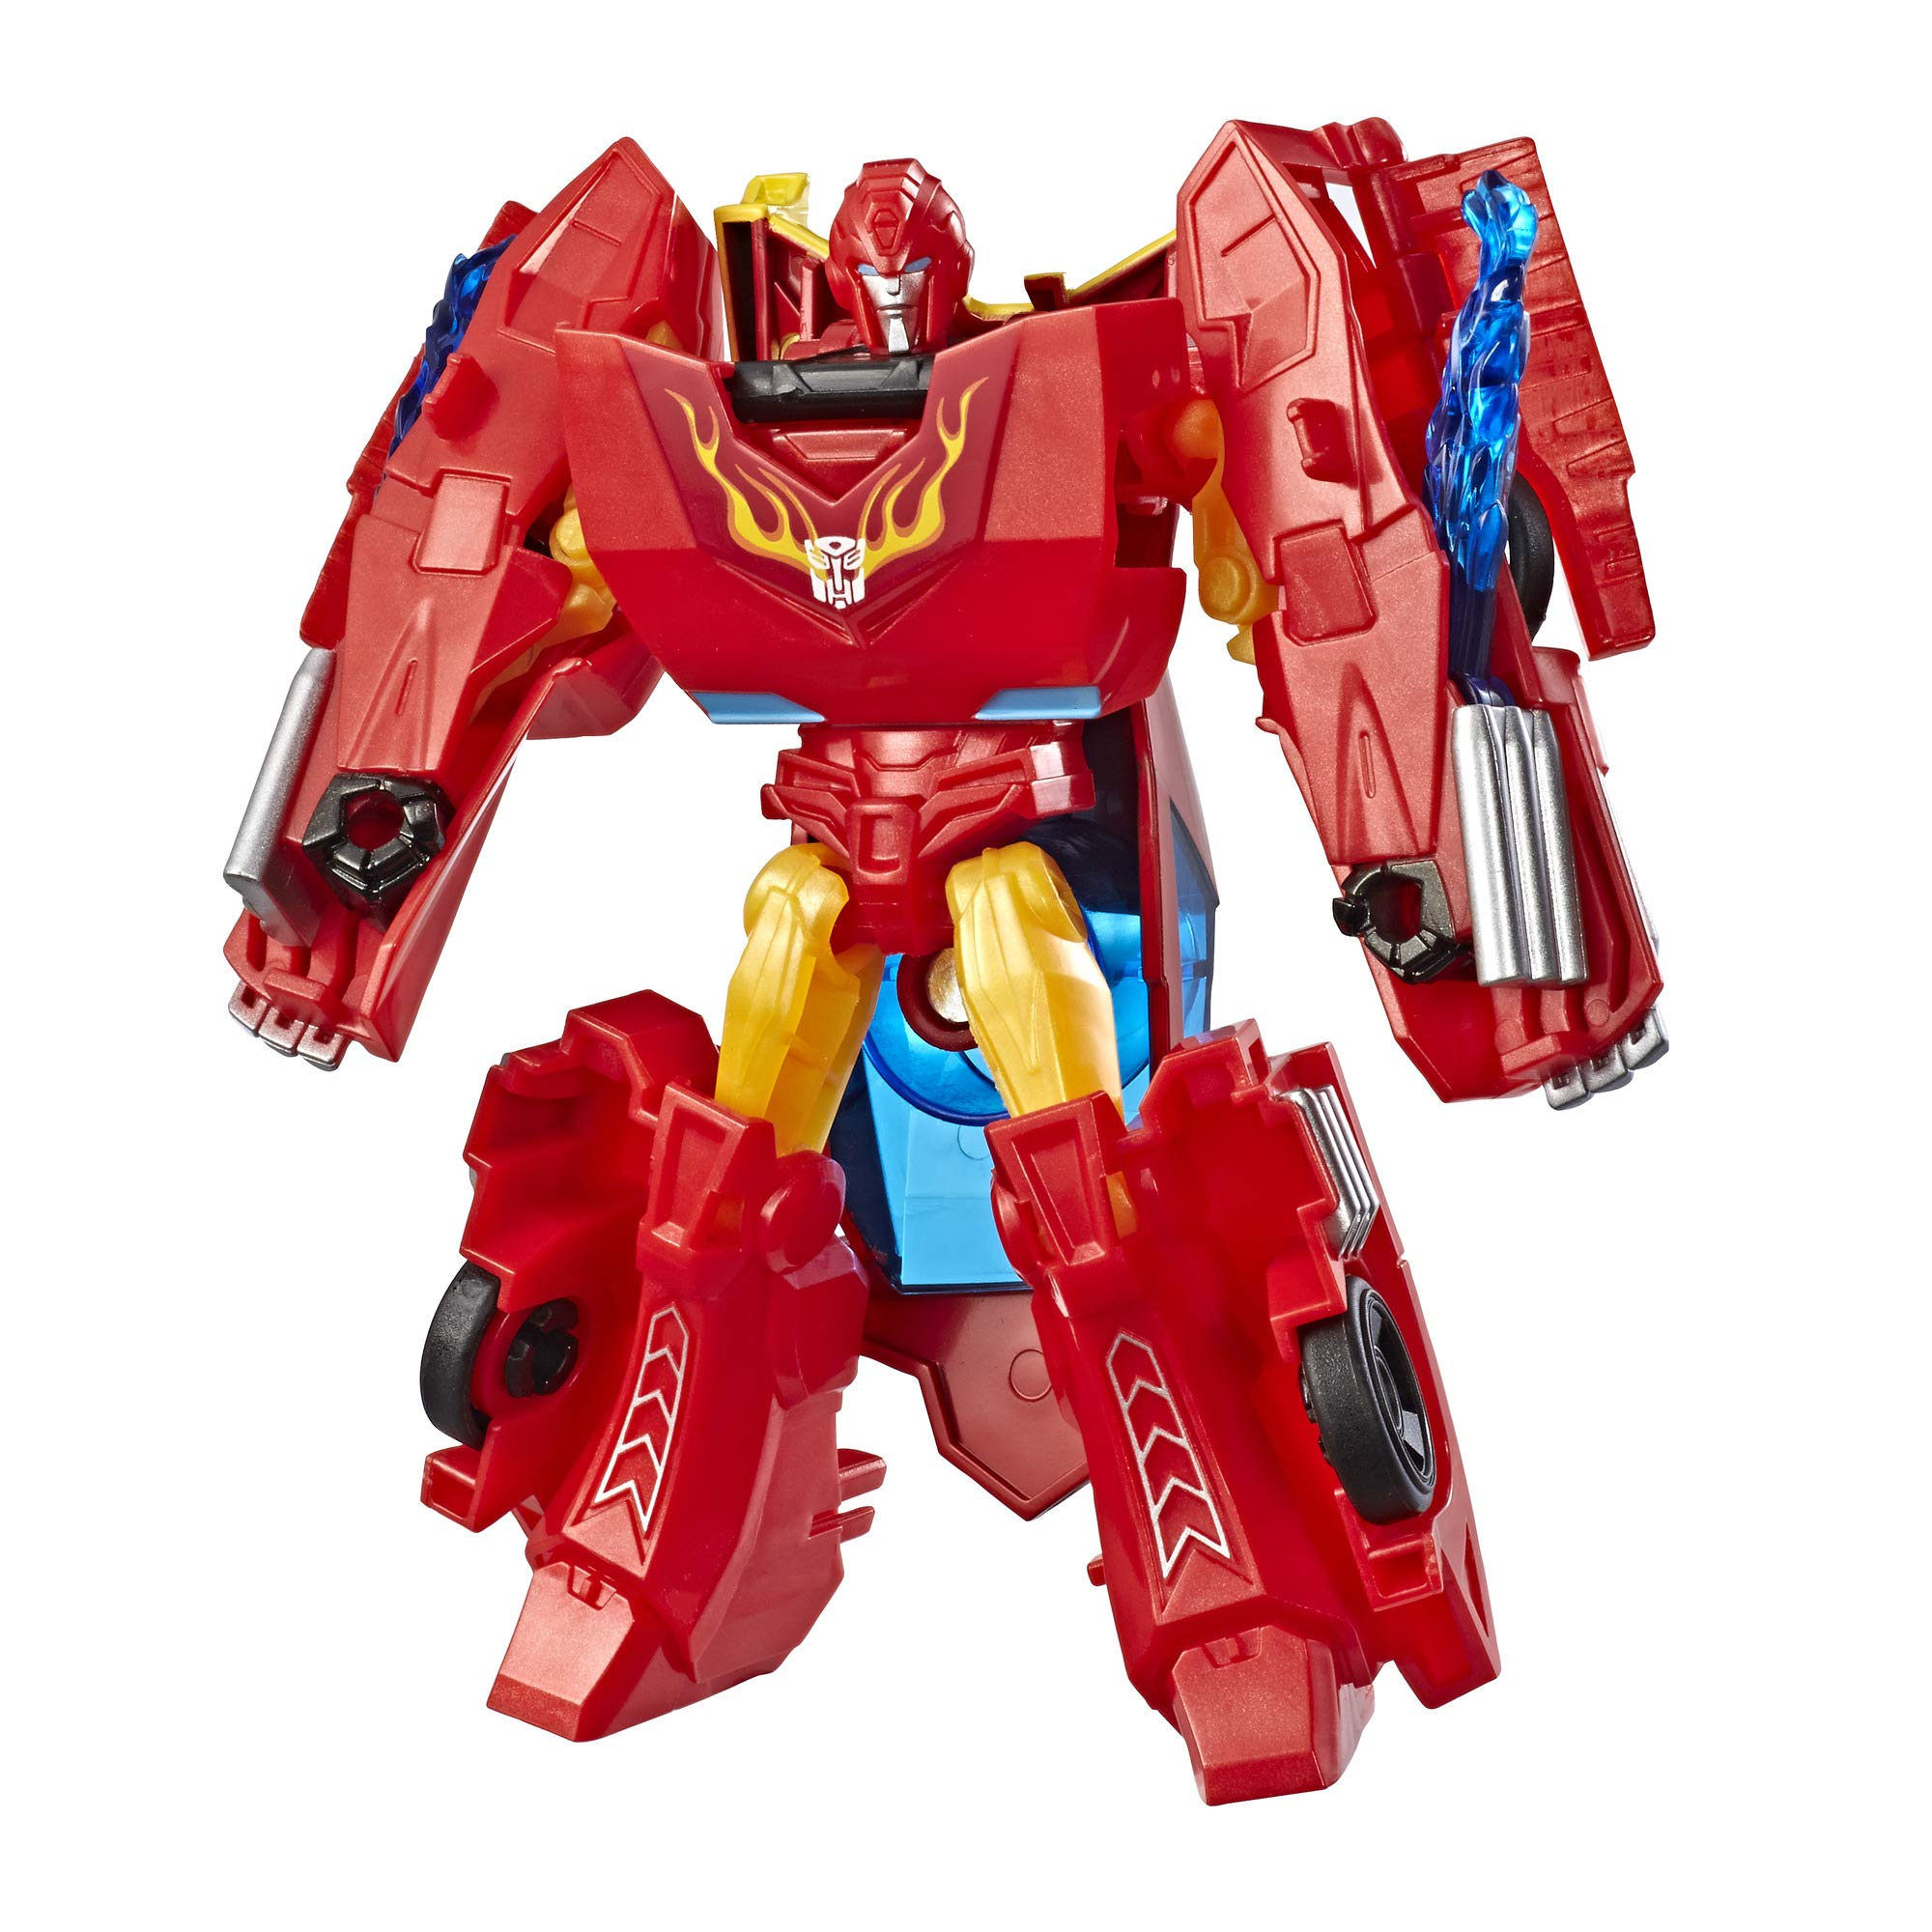 Stock Photos Cyberverse Warrior Class Wave 3 Hot Rod